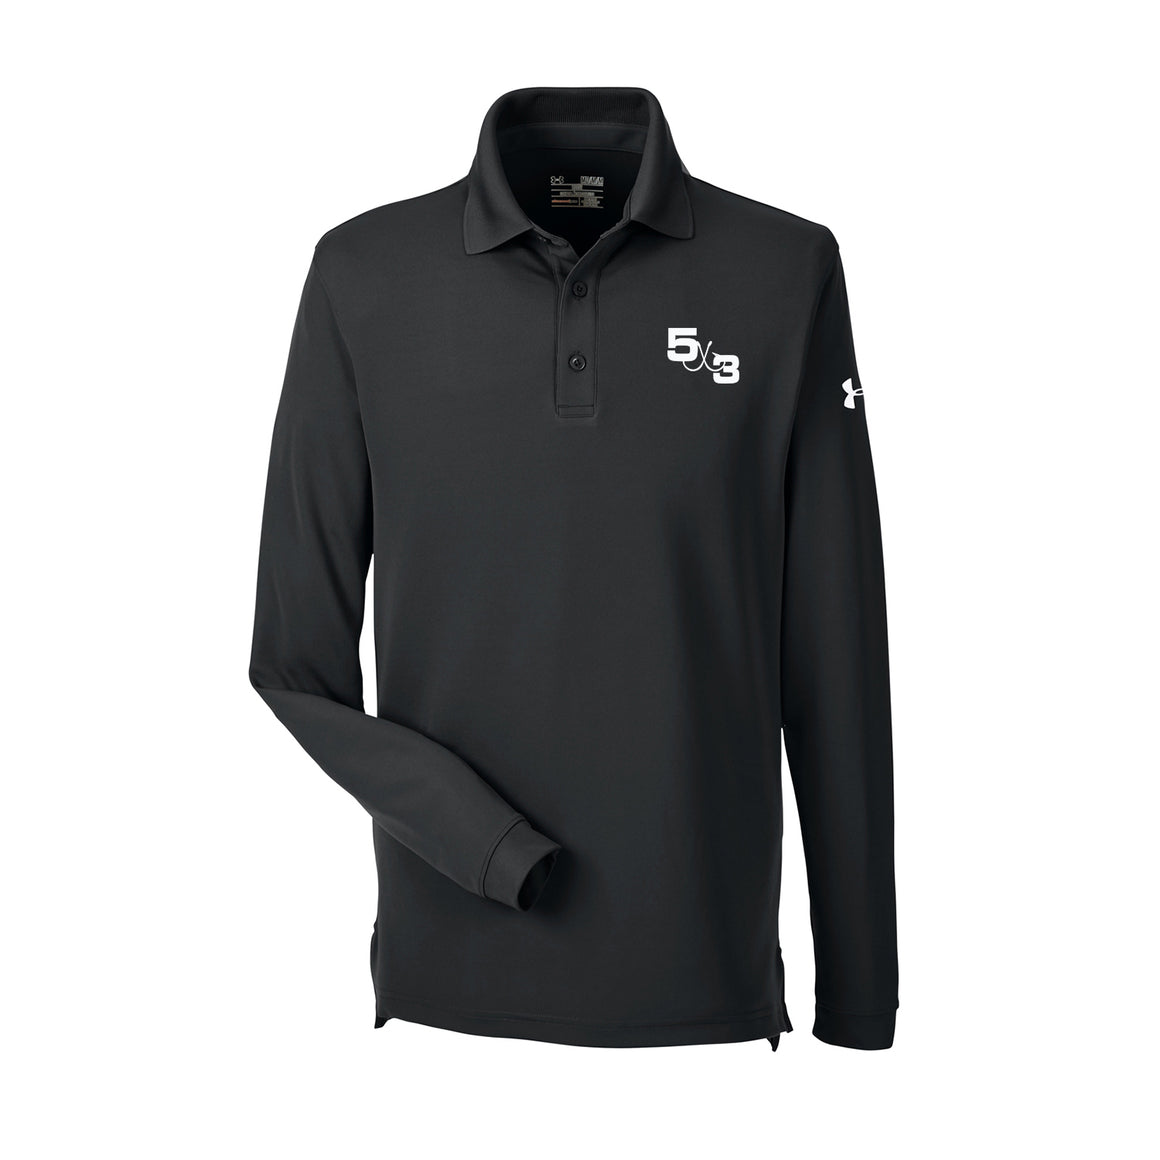 5X3 Under Armour Embroidered Long Sleeve Polo (Preorder) 3 Colors to choose from